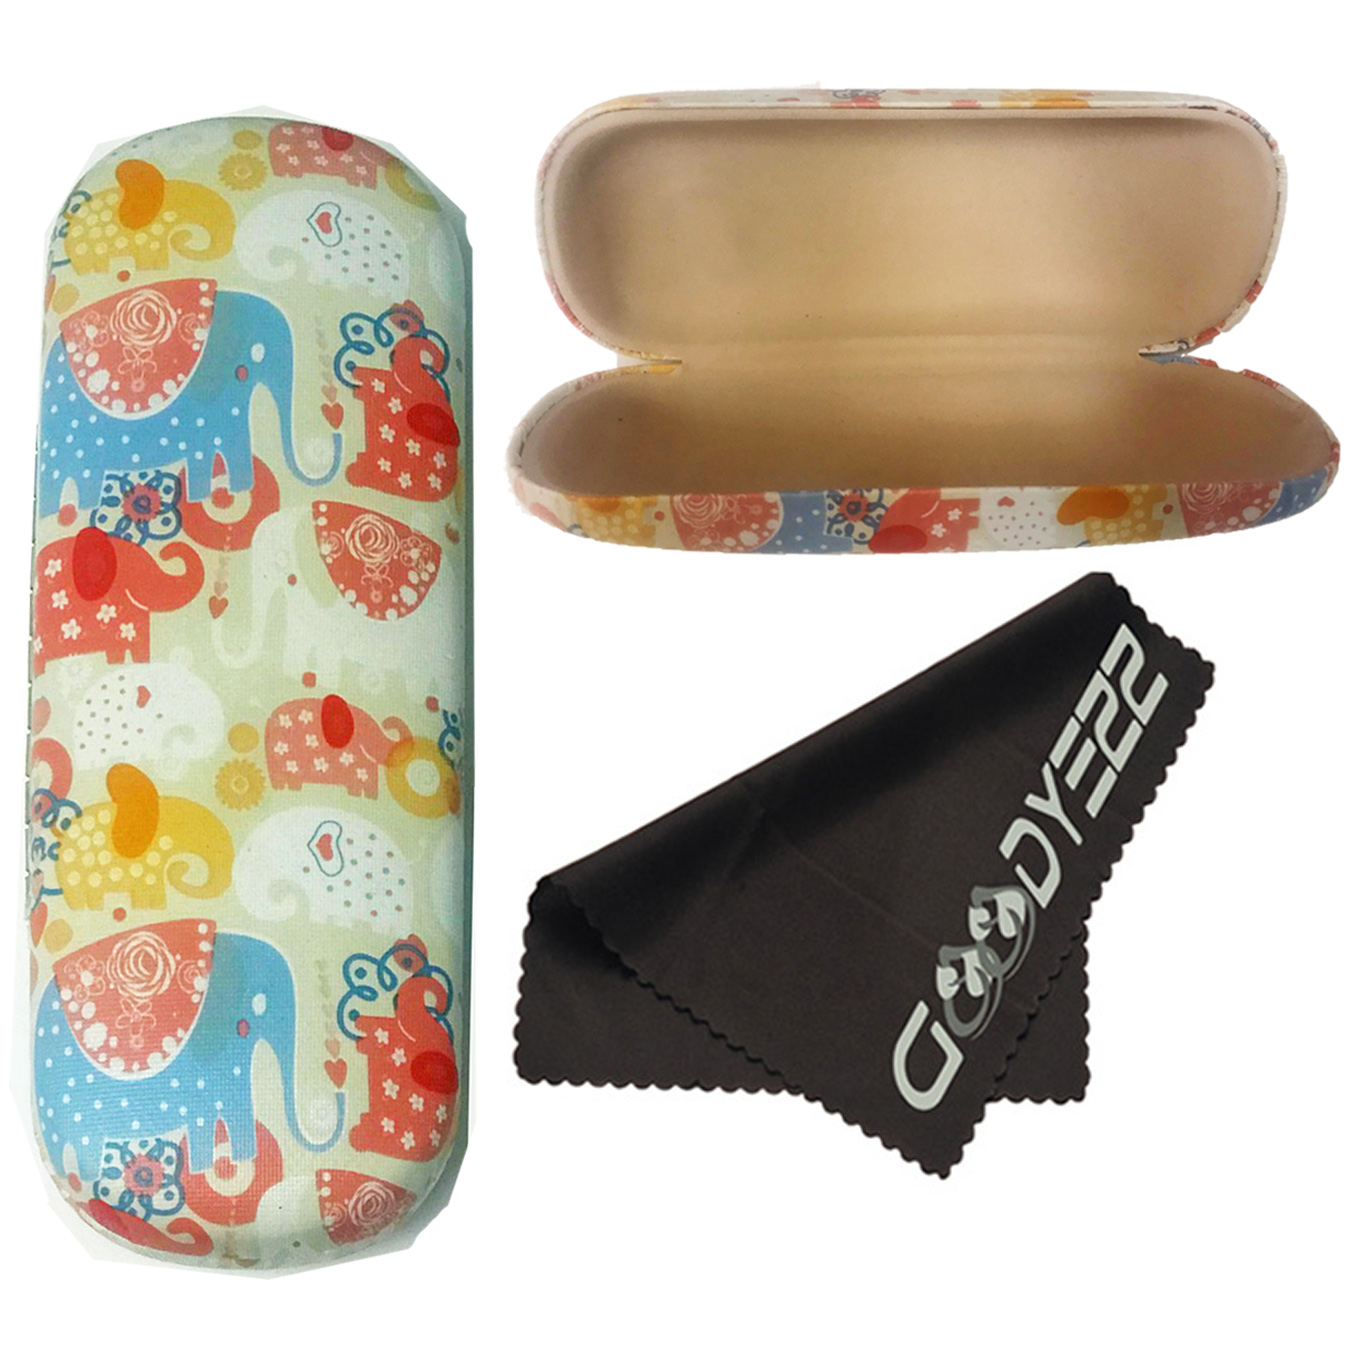 Protective Case for Glasses Sunglasses Holder With Cleaning Cloth Glasses Case Hard Shell